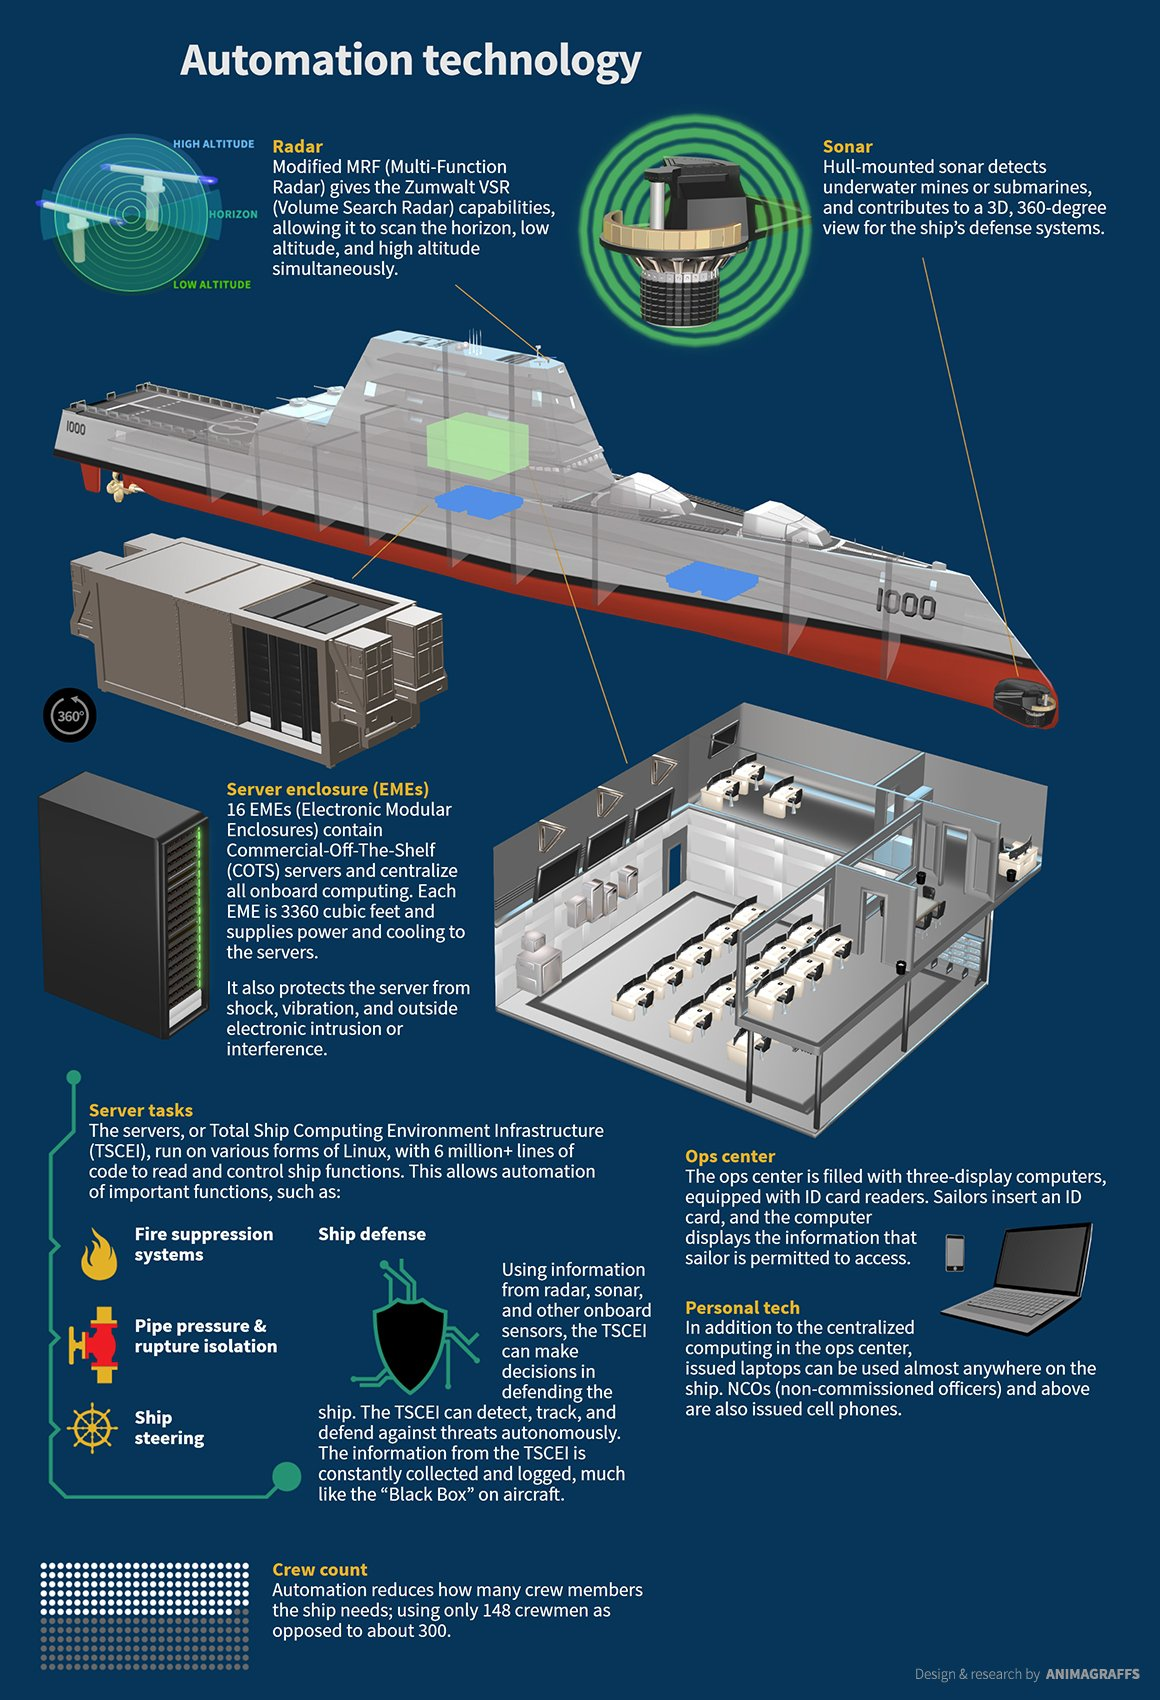 Automation Technology: USS Zumwalt Is US Navy's Most Advanced Warship